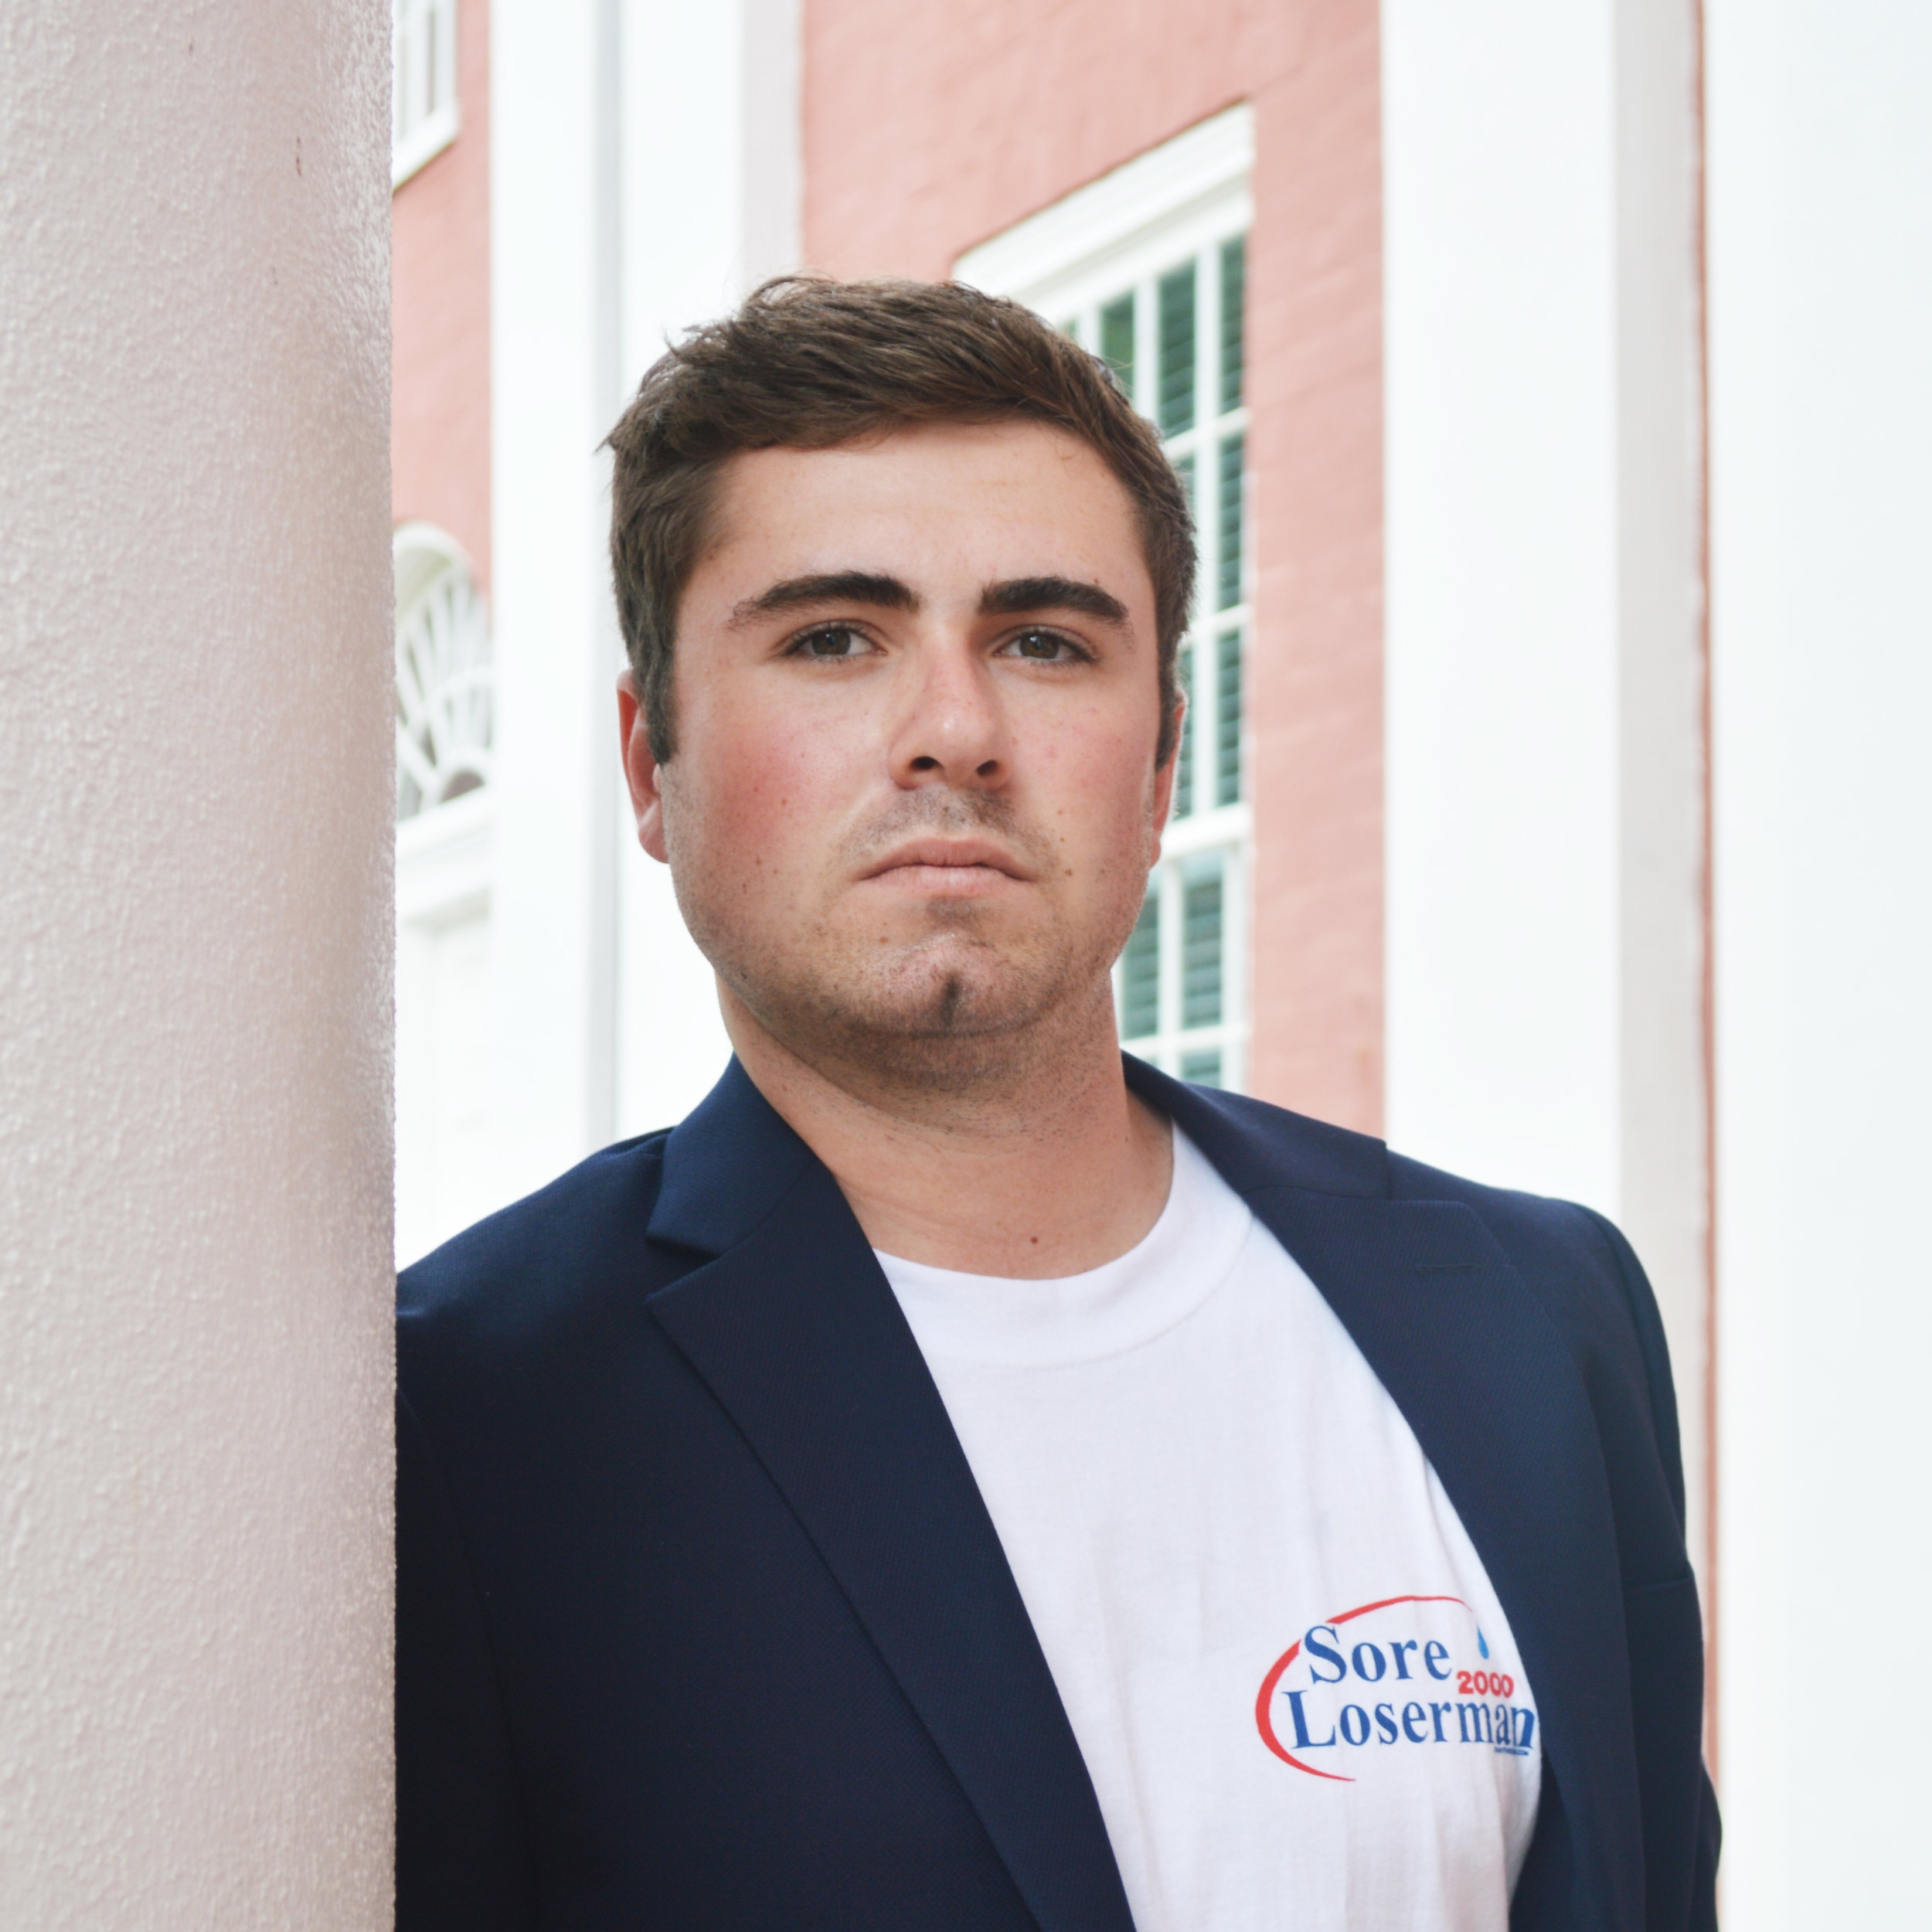 John Tompkins - Tompkins will also graduate with a major in American politics. He is still pondering his next step in life.